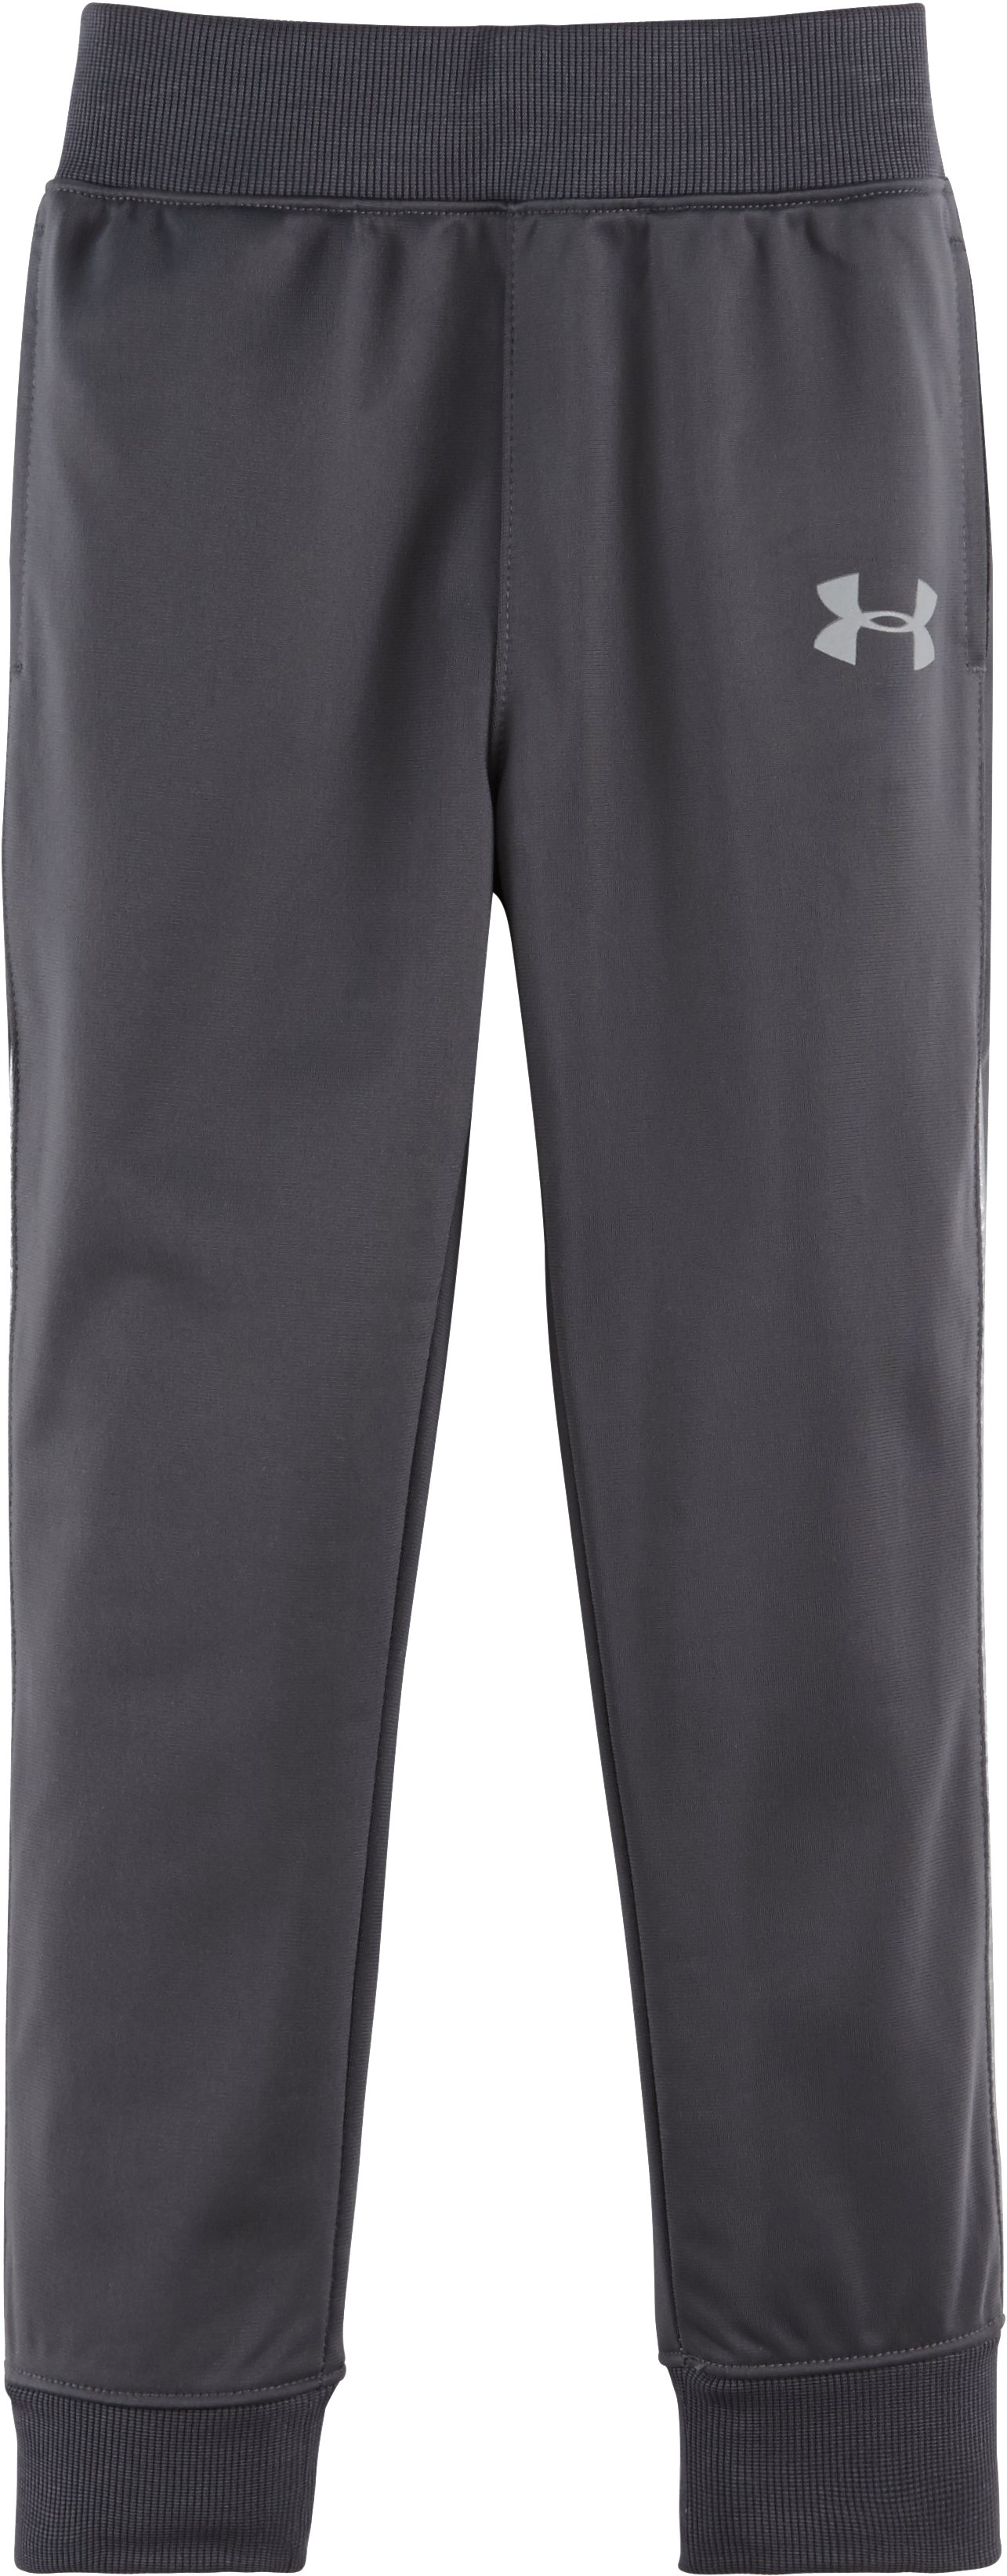 Boys' Newborn UA Pennant Tapered Pants, STEALTH GRAY